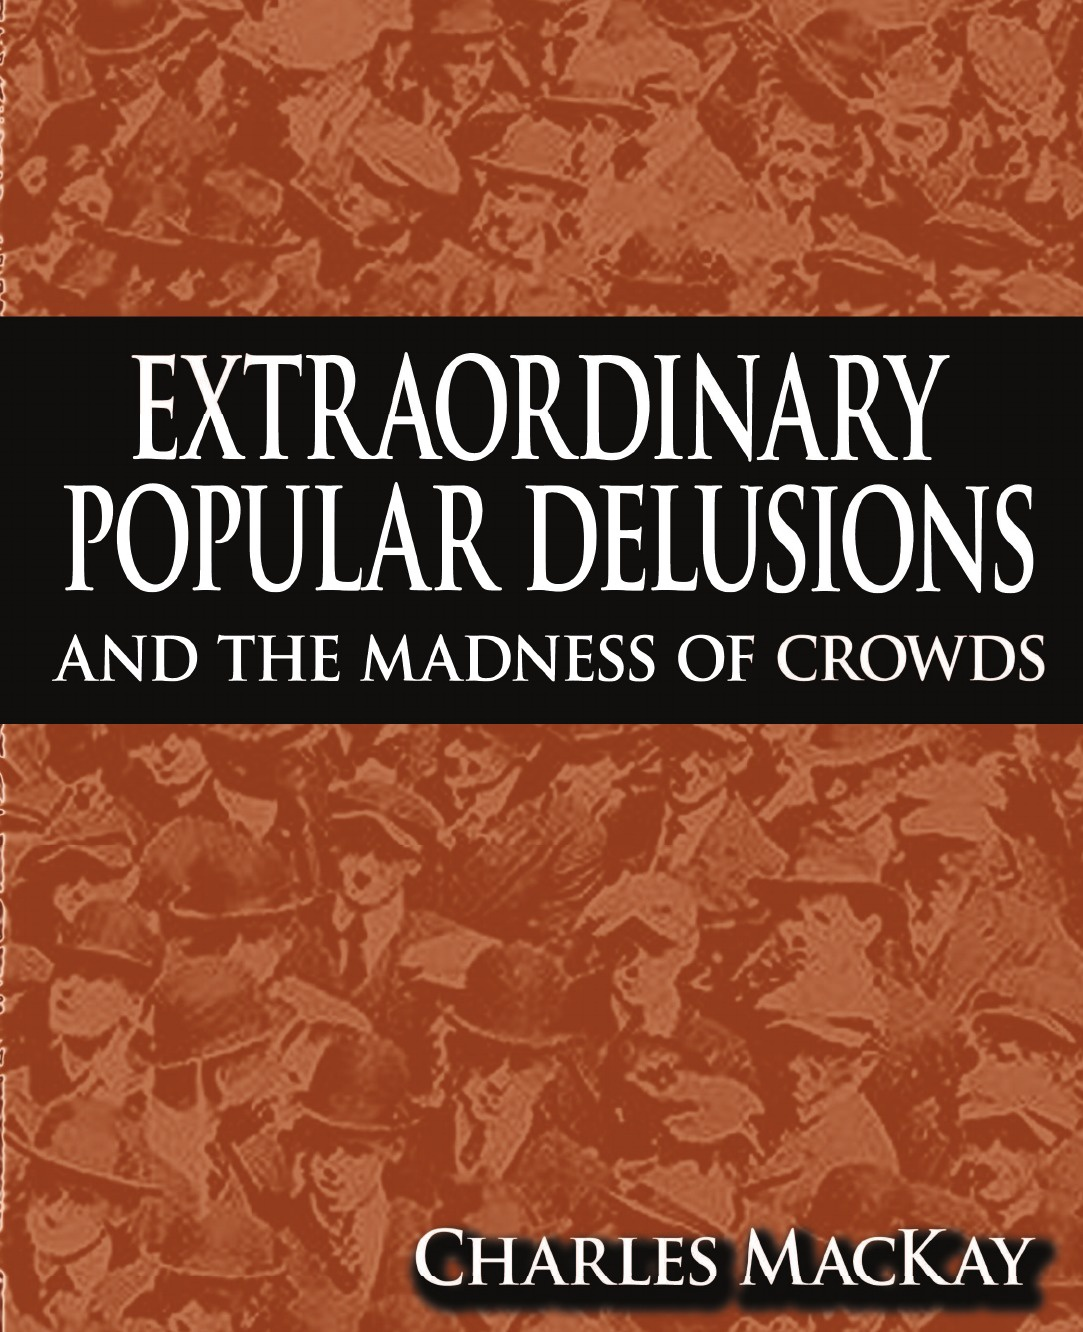 Charles MacKay Extraordinary Popular Delusions and the Madness of Crowds